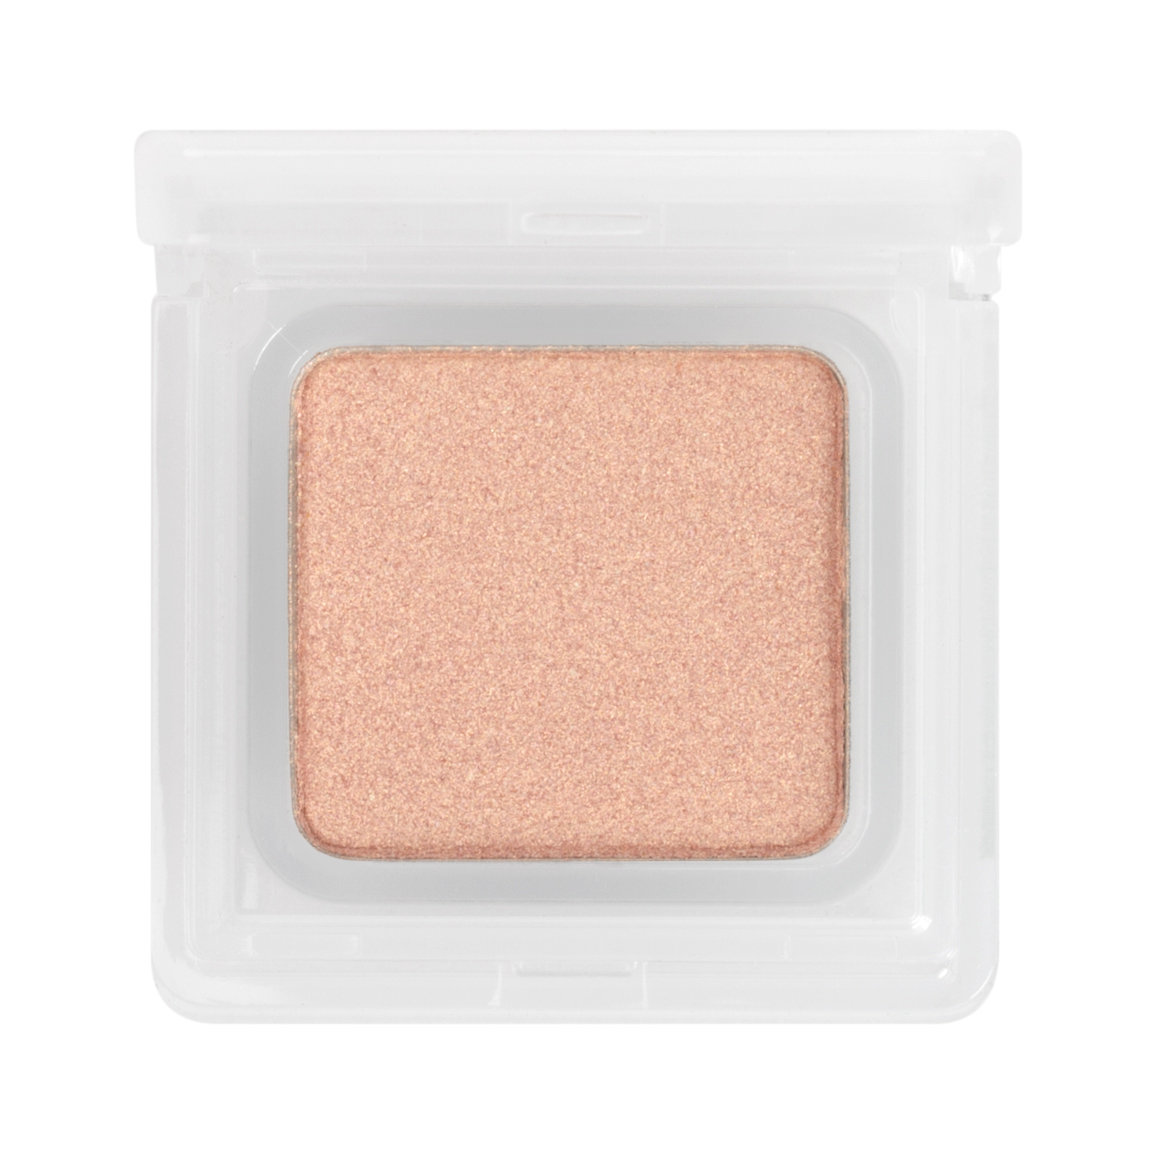 Natasha Denona Mono Eye Shadow Duo-Chrome 52M - Golden Beige alternative view 1 - product swatch.